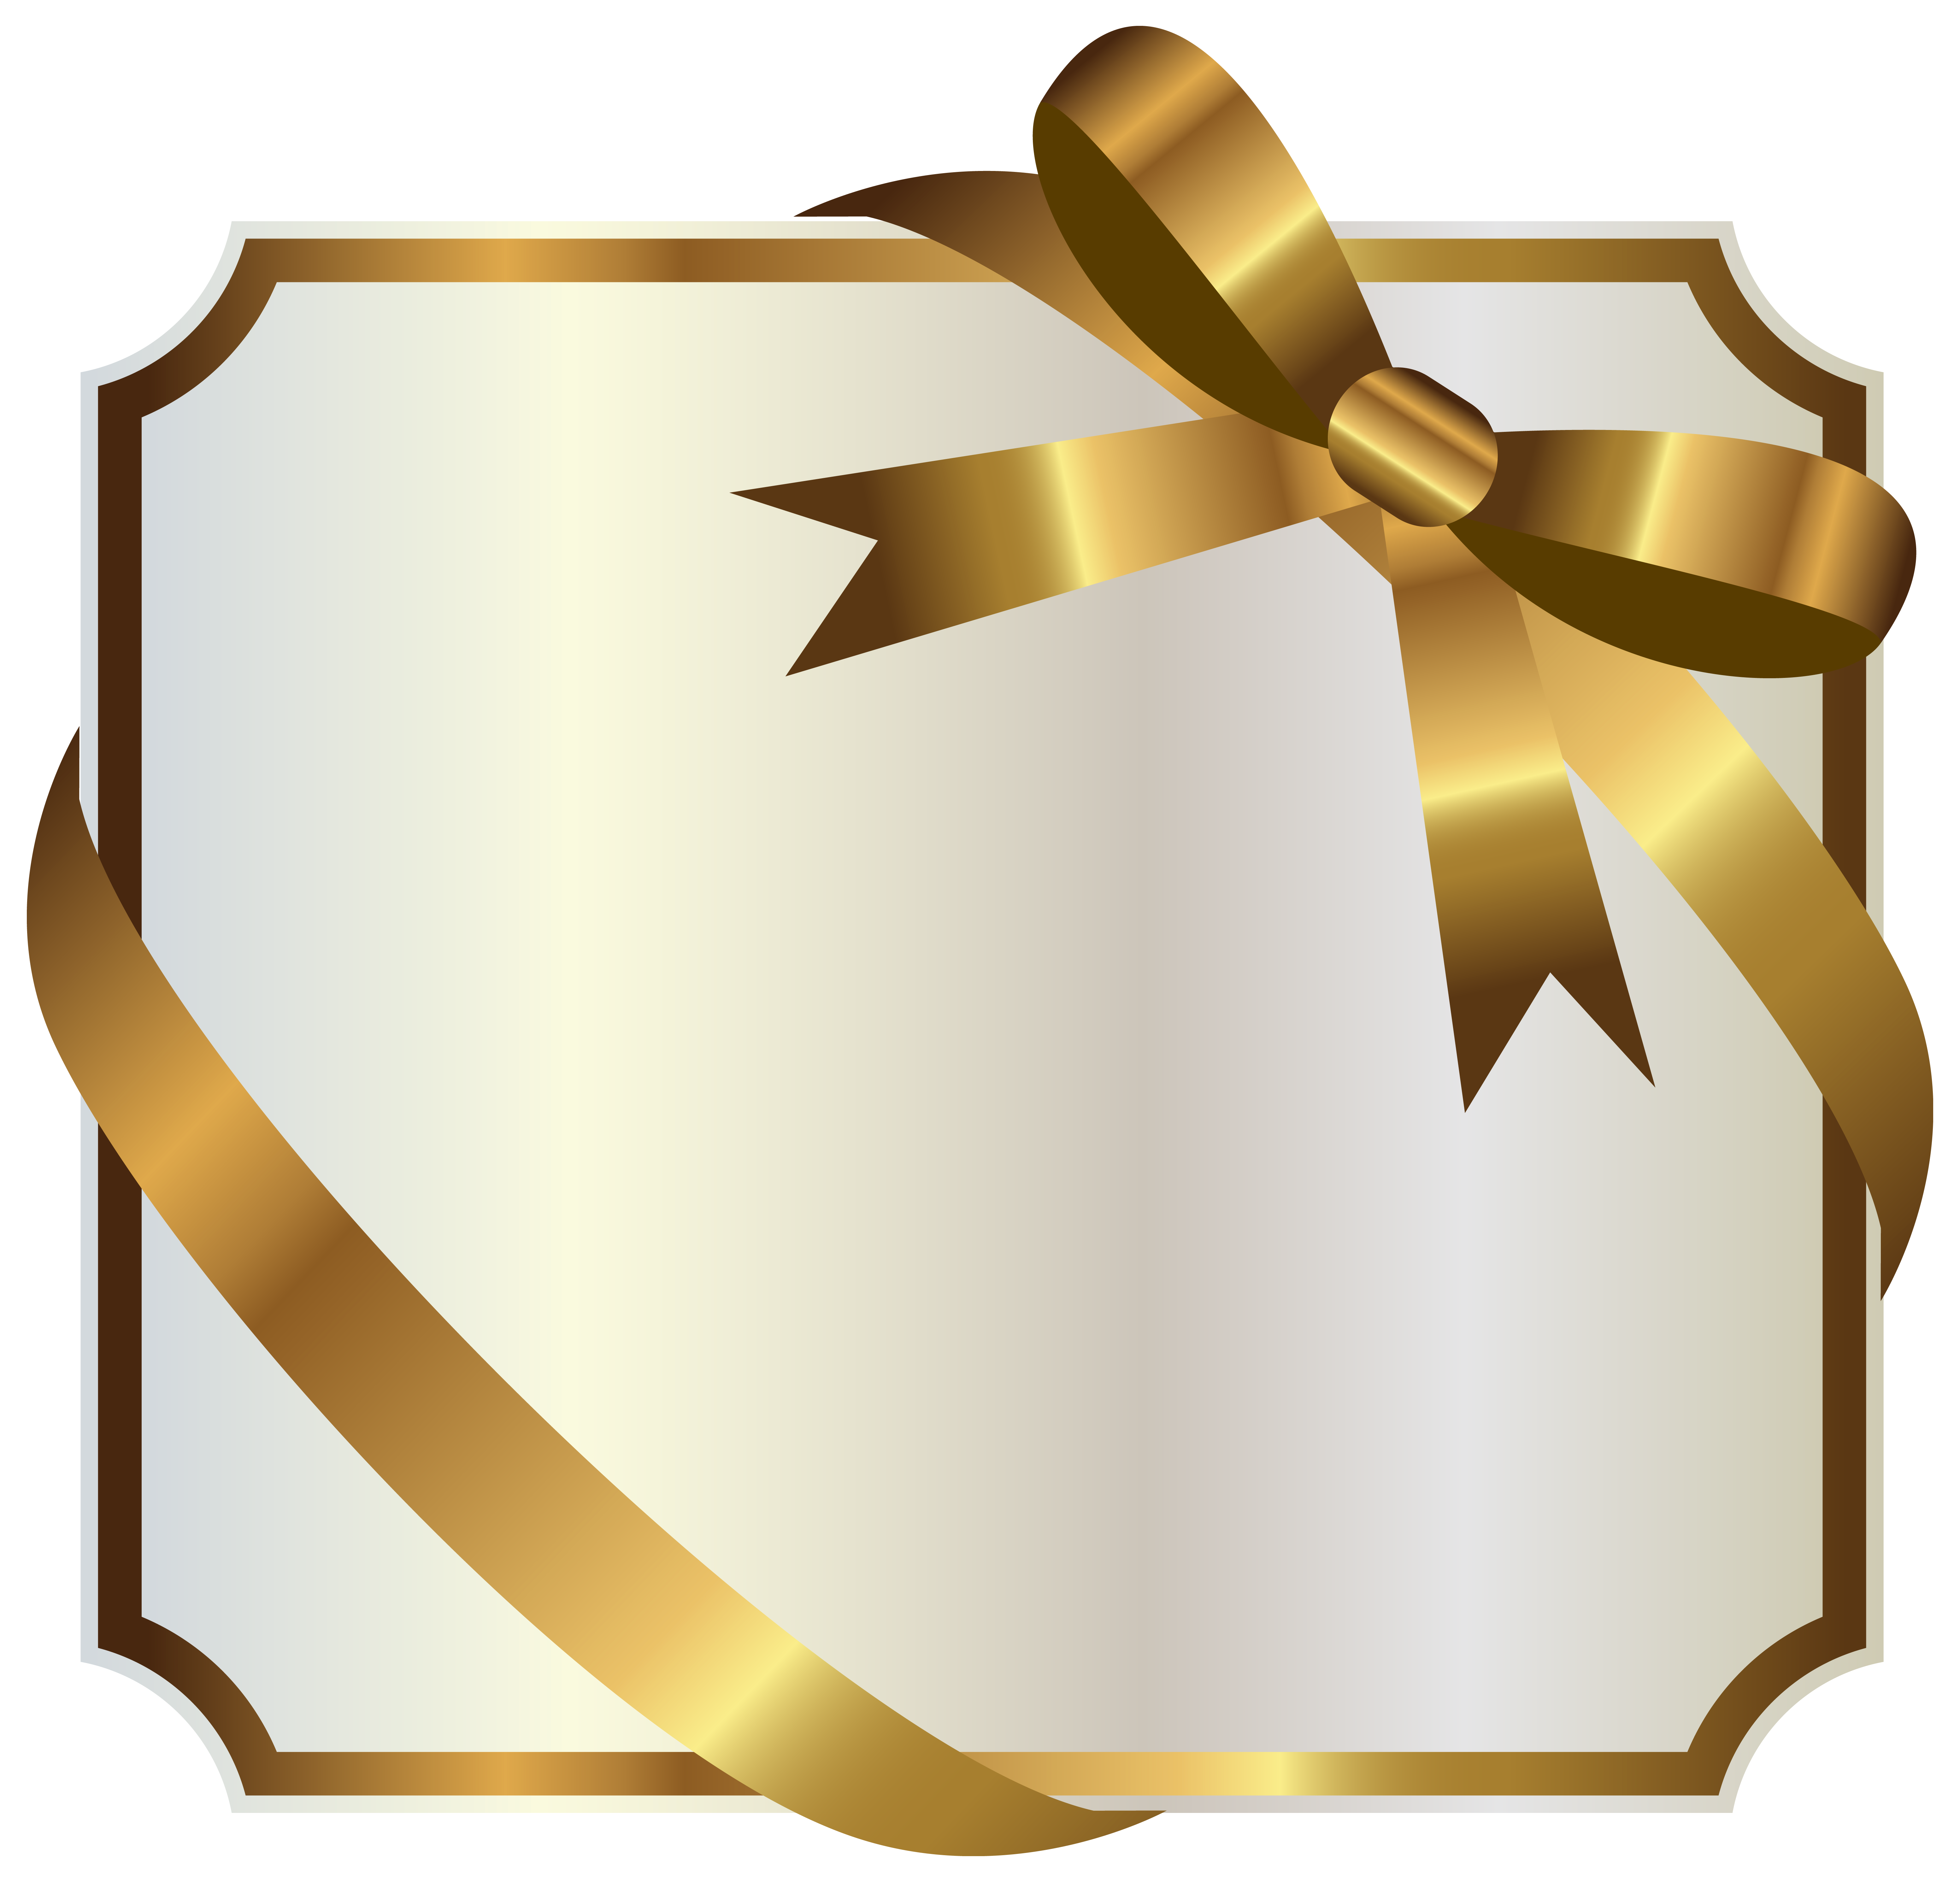 White label with gold. Clipart frame ribbon